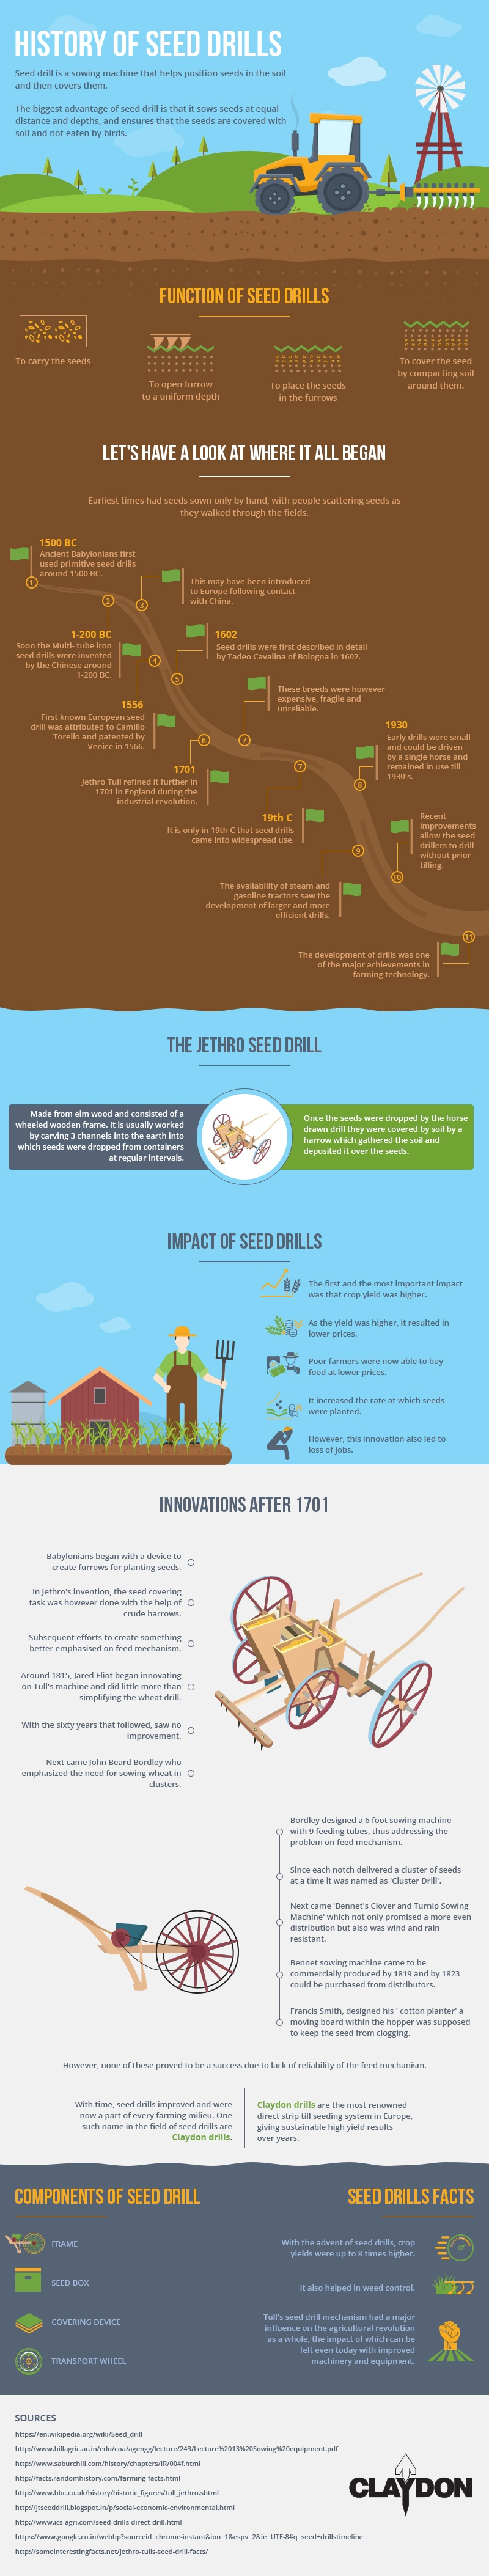 History of Seed Drills